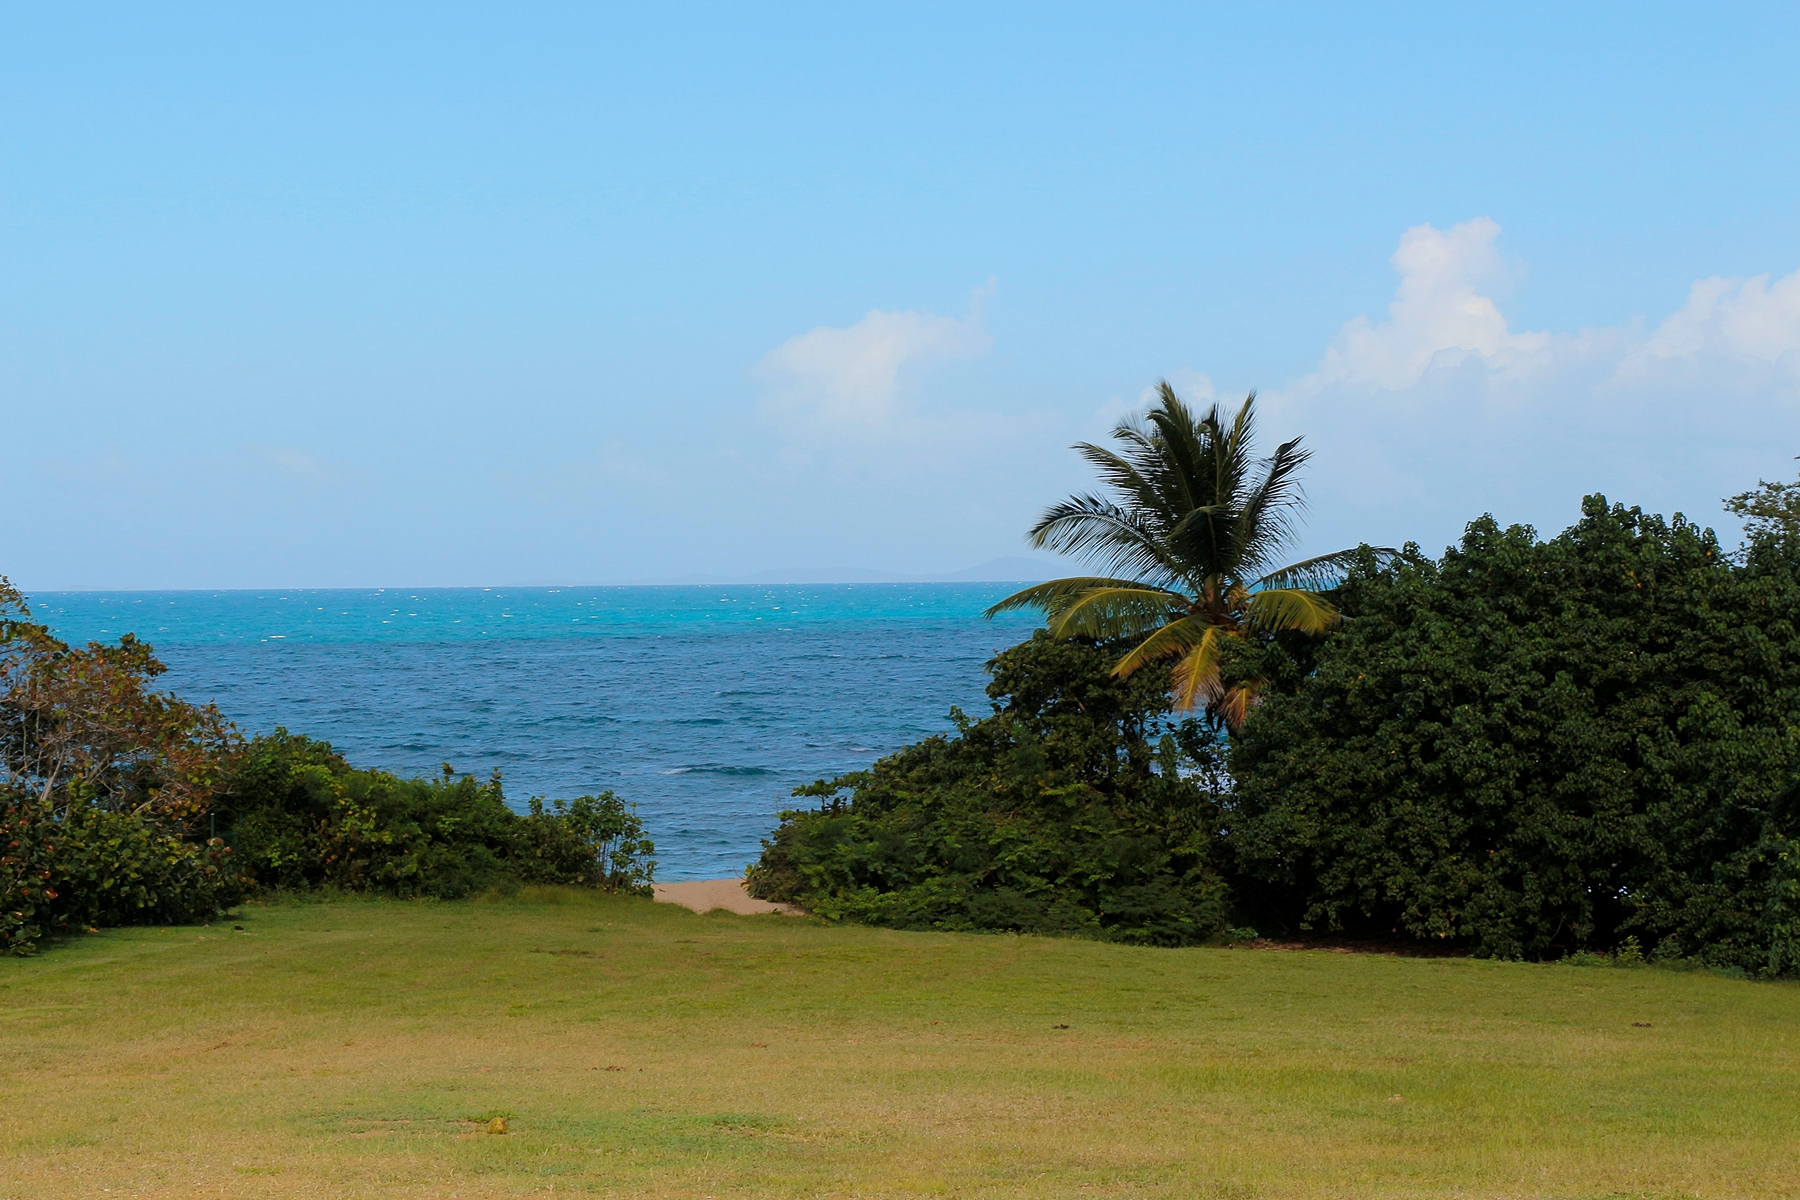 Additional photo for property listing at Architect Ready Beach Front lot, W Residences Lot 9 W Hotel Private Residences Vieques, Puerto Rico 00765 Puerto Rico